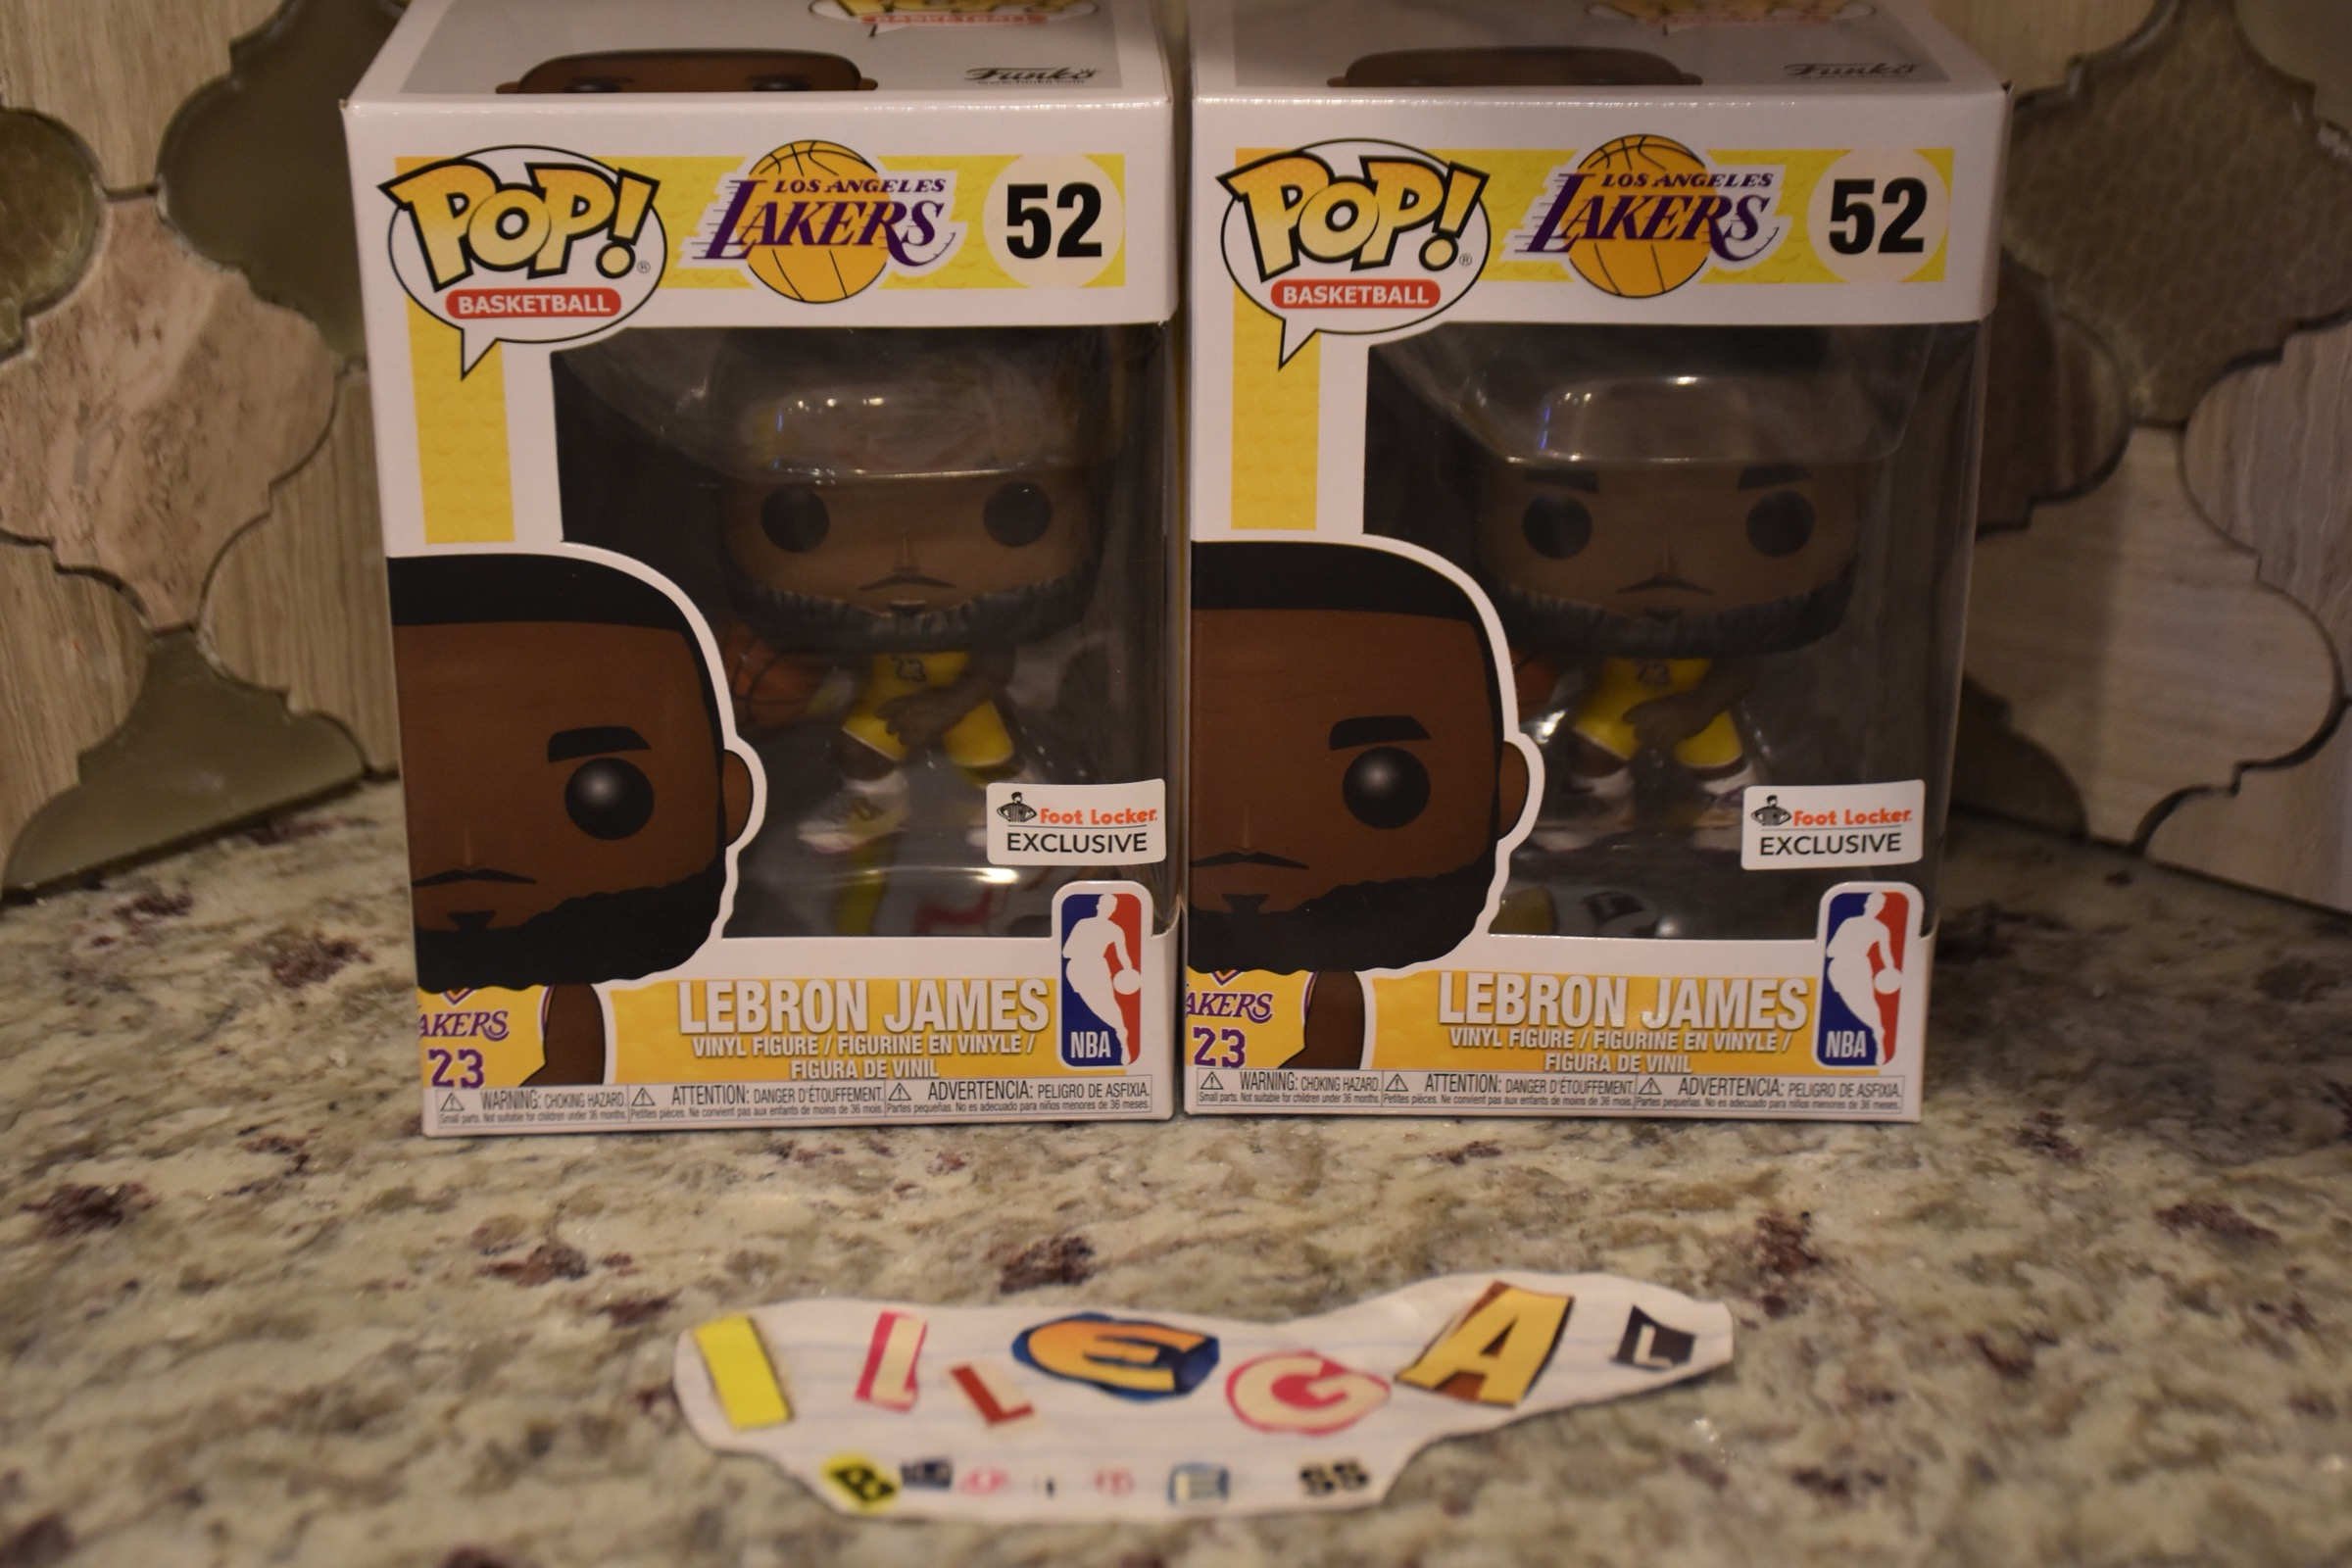 Unknown Lebron James Foot locket Exclusive Funko Pop Vinyl Size one size -  Miscellaneous for Sale - Grailed b3b7cf31e